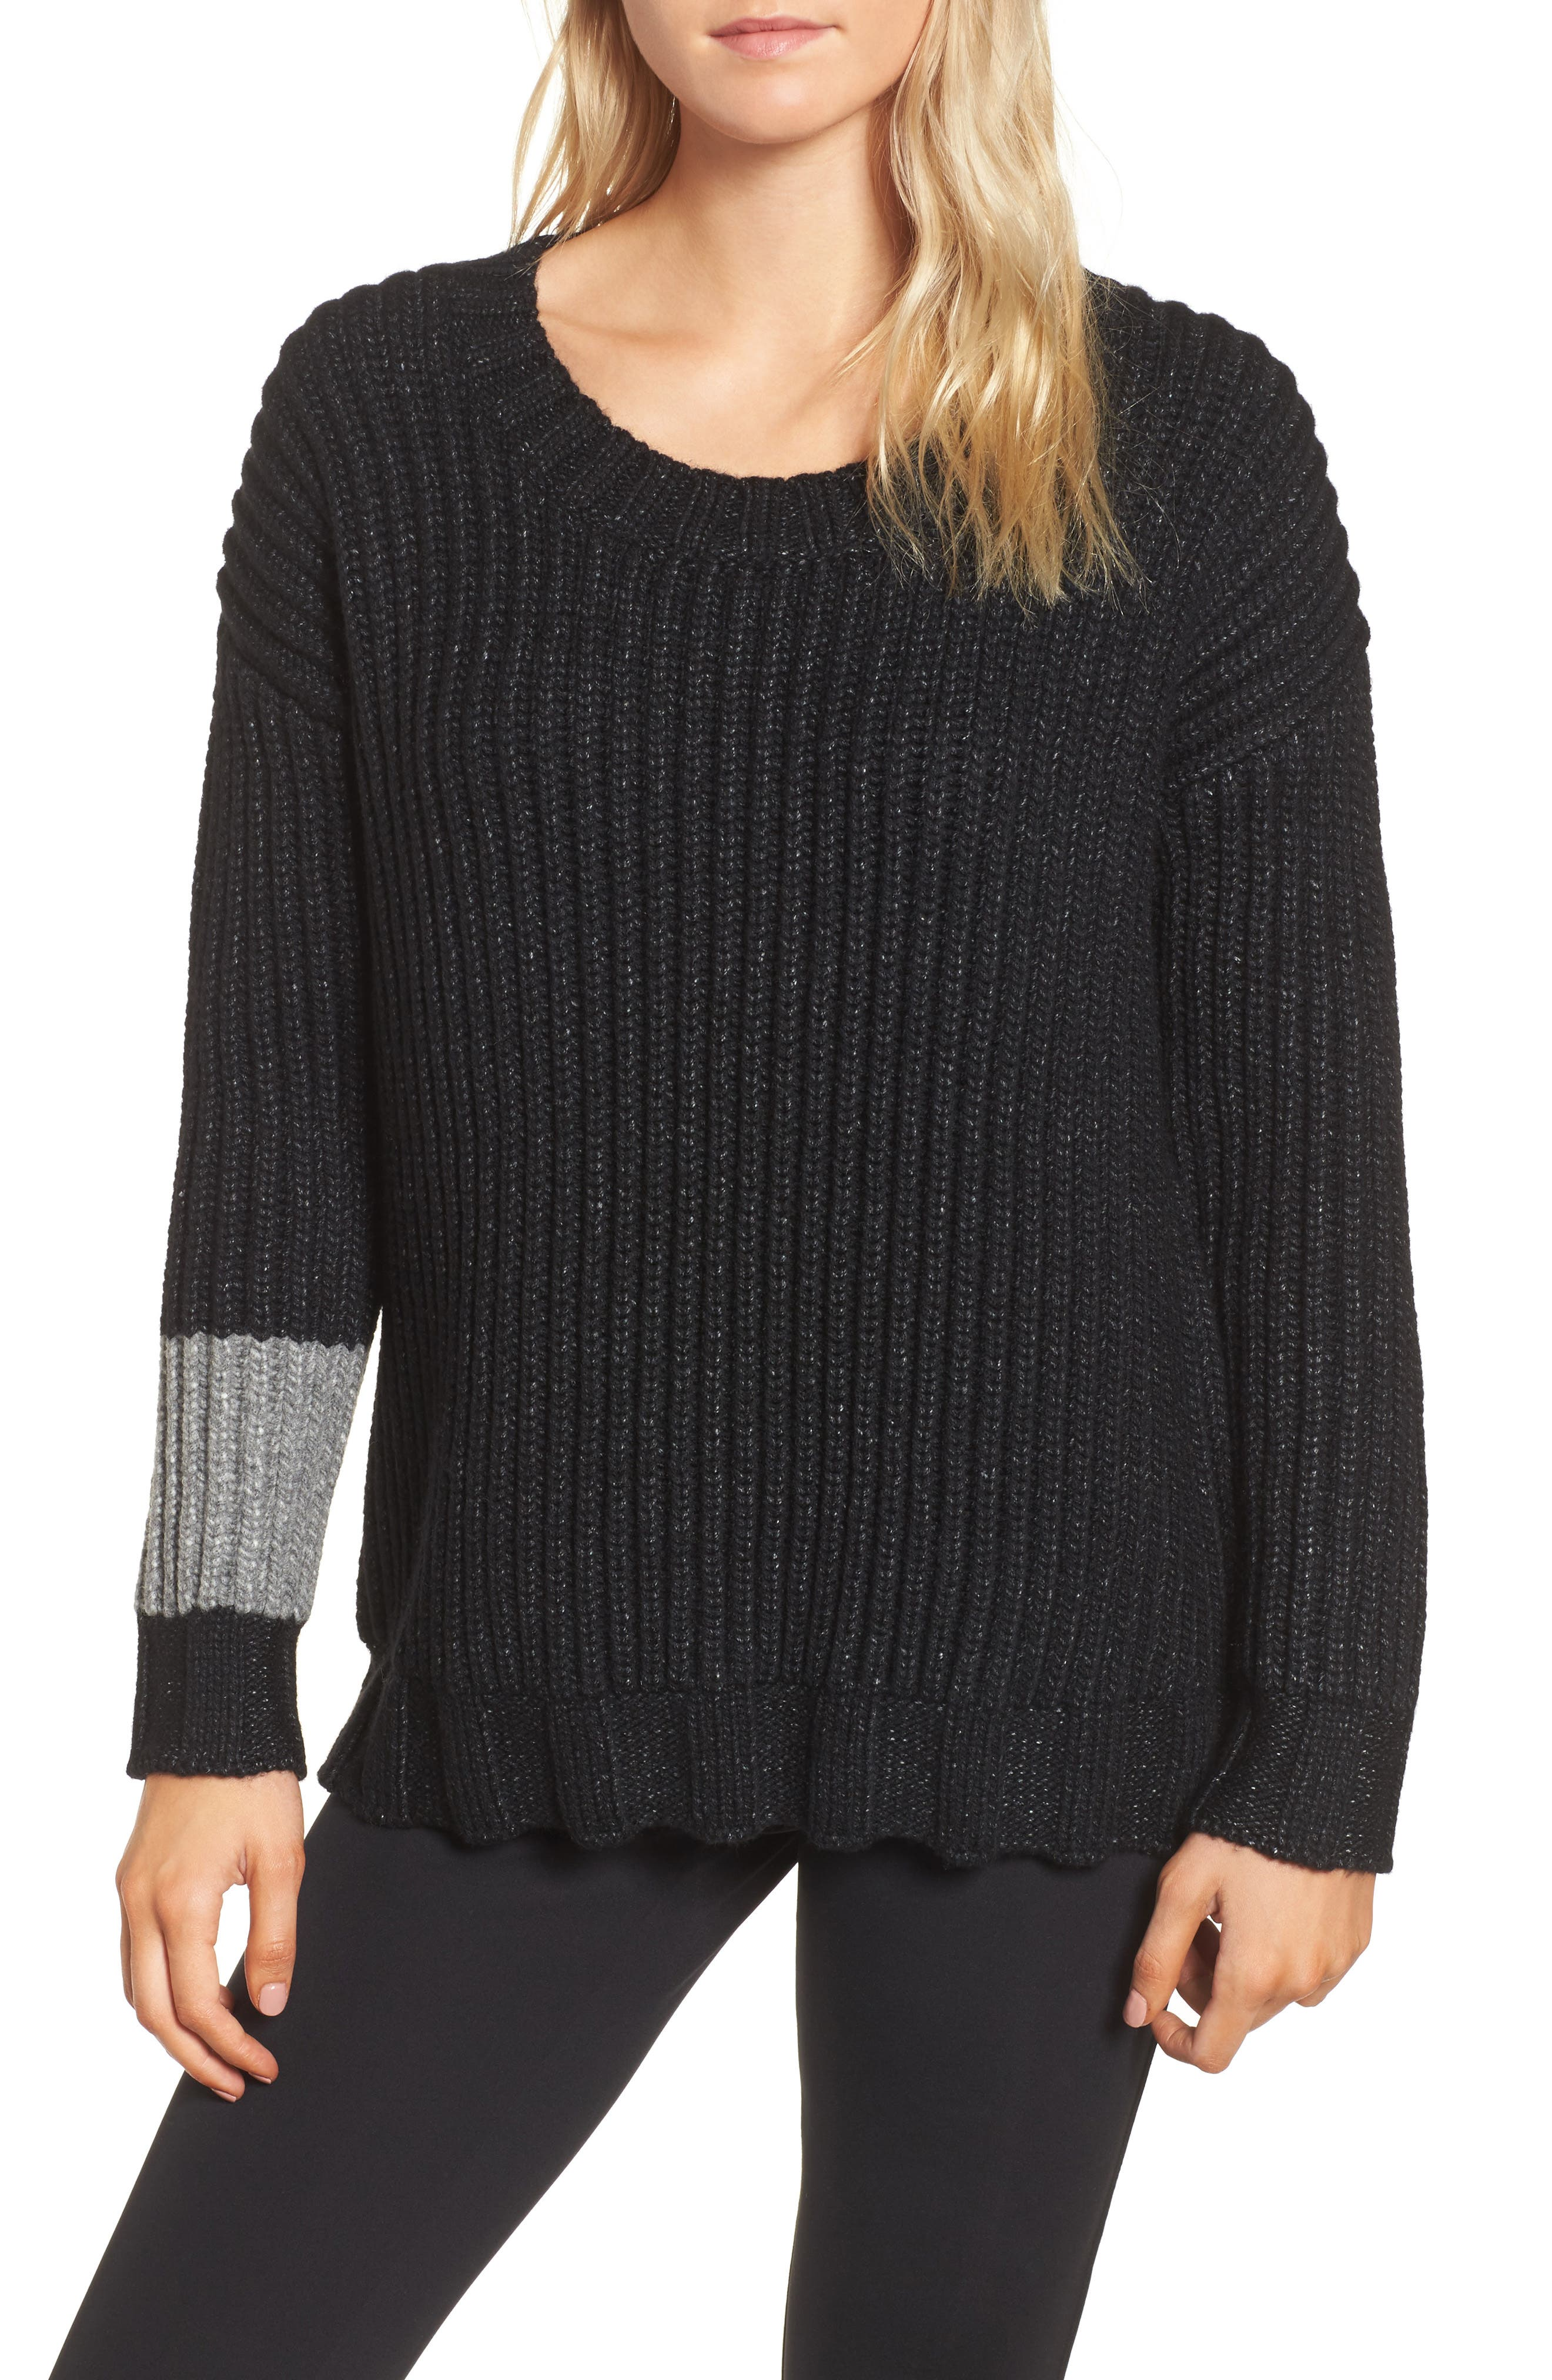 Alternate Image 1 Selected - James Perse Chunky Armband Sweater